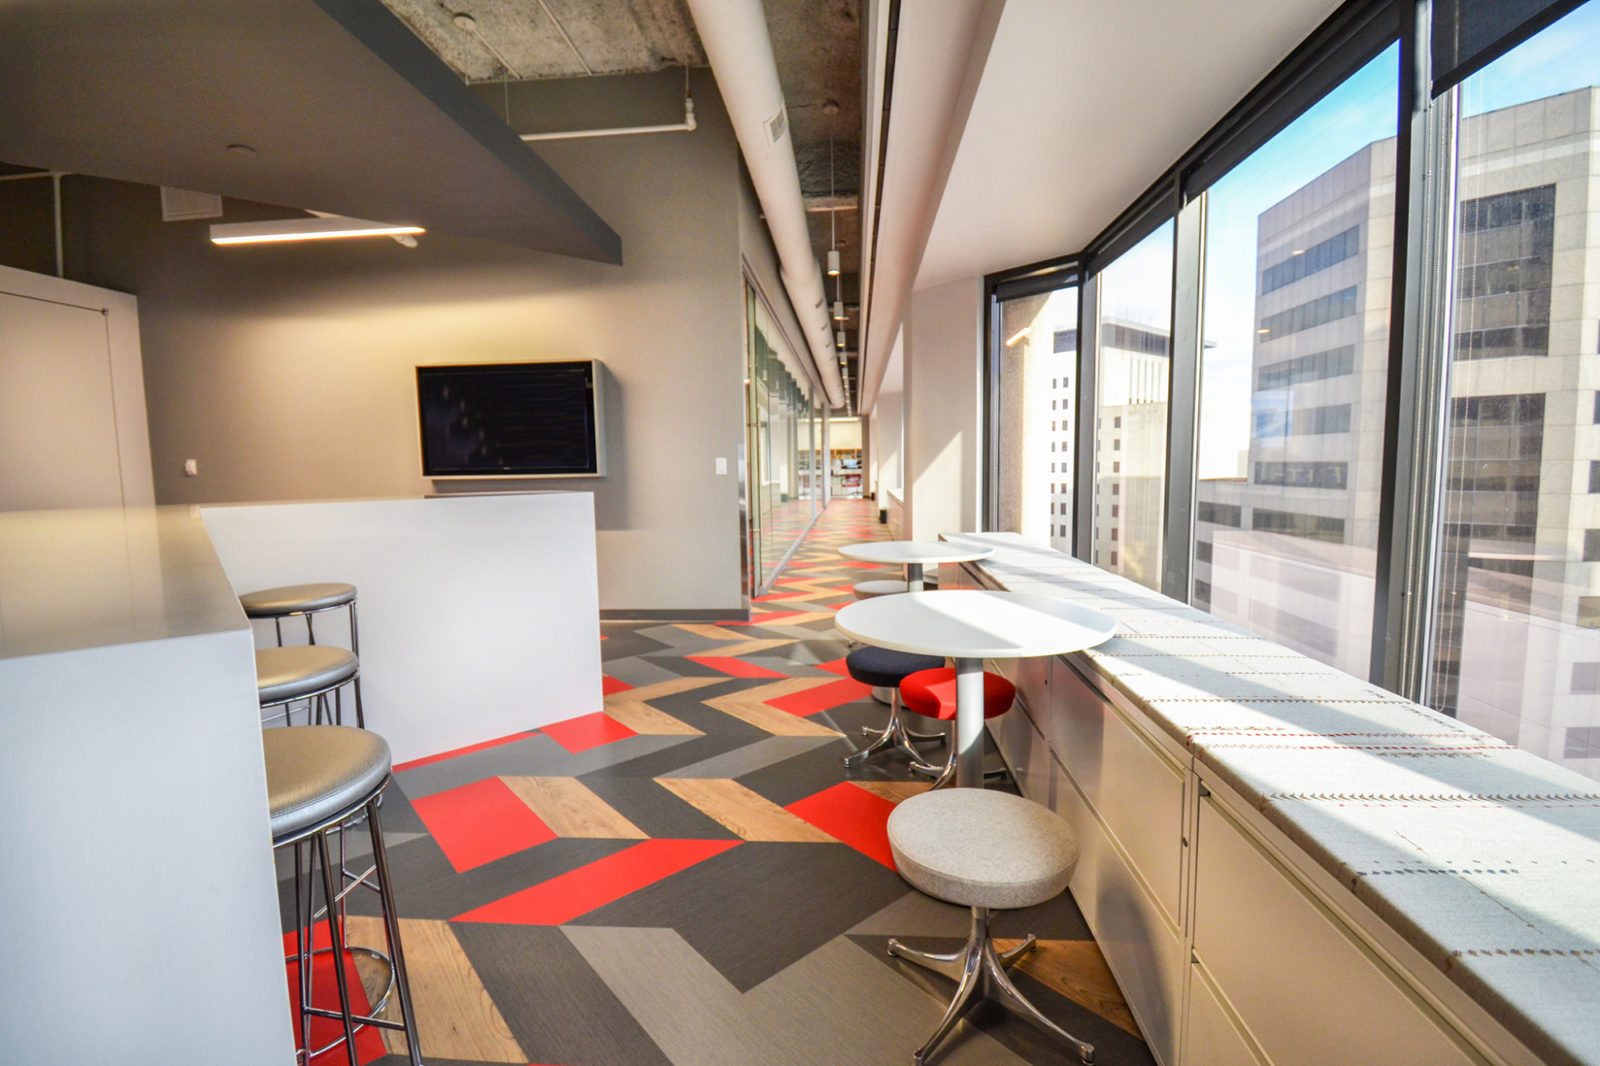 CW Project Highlight: hallway and work tables by window